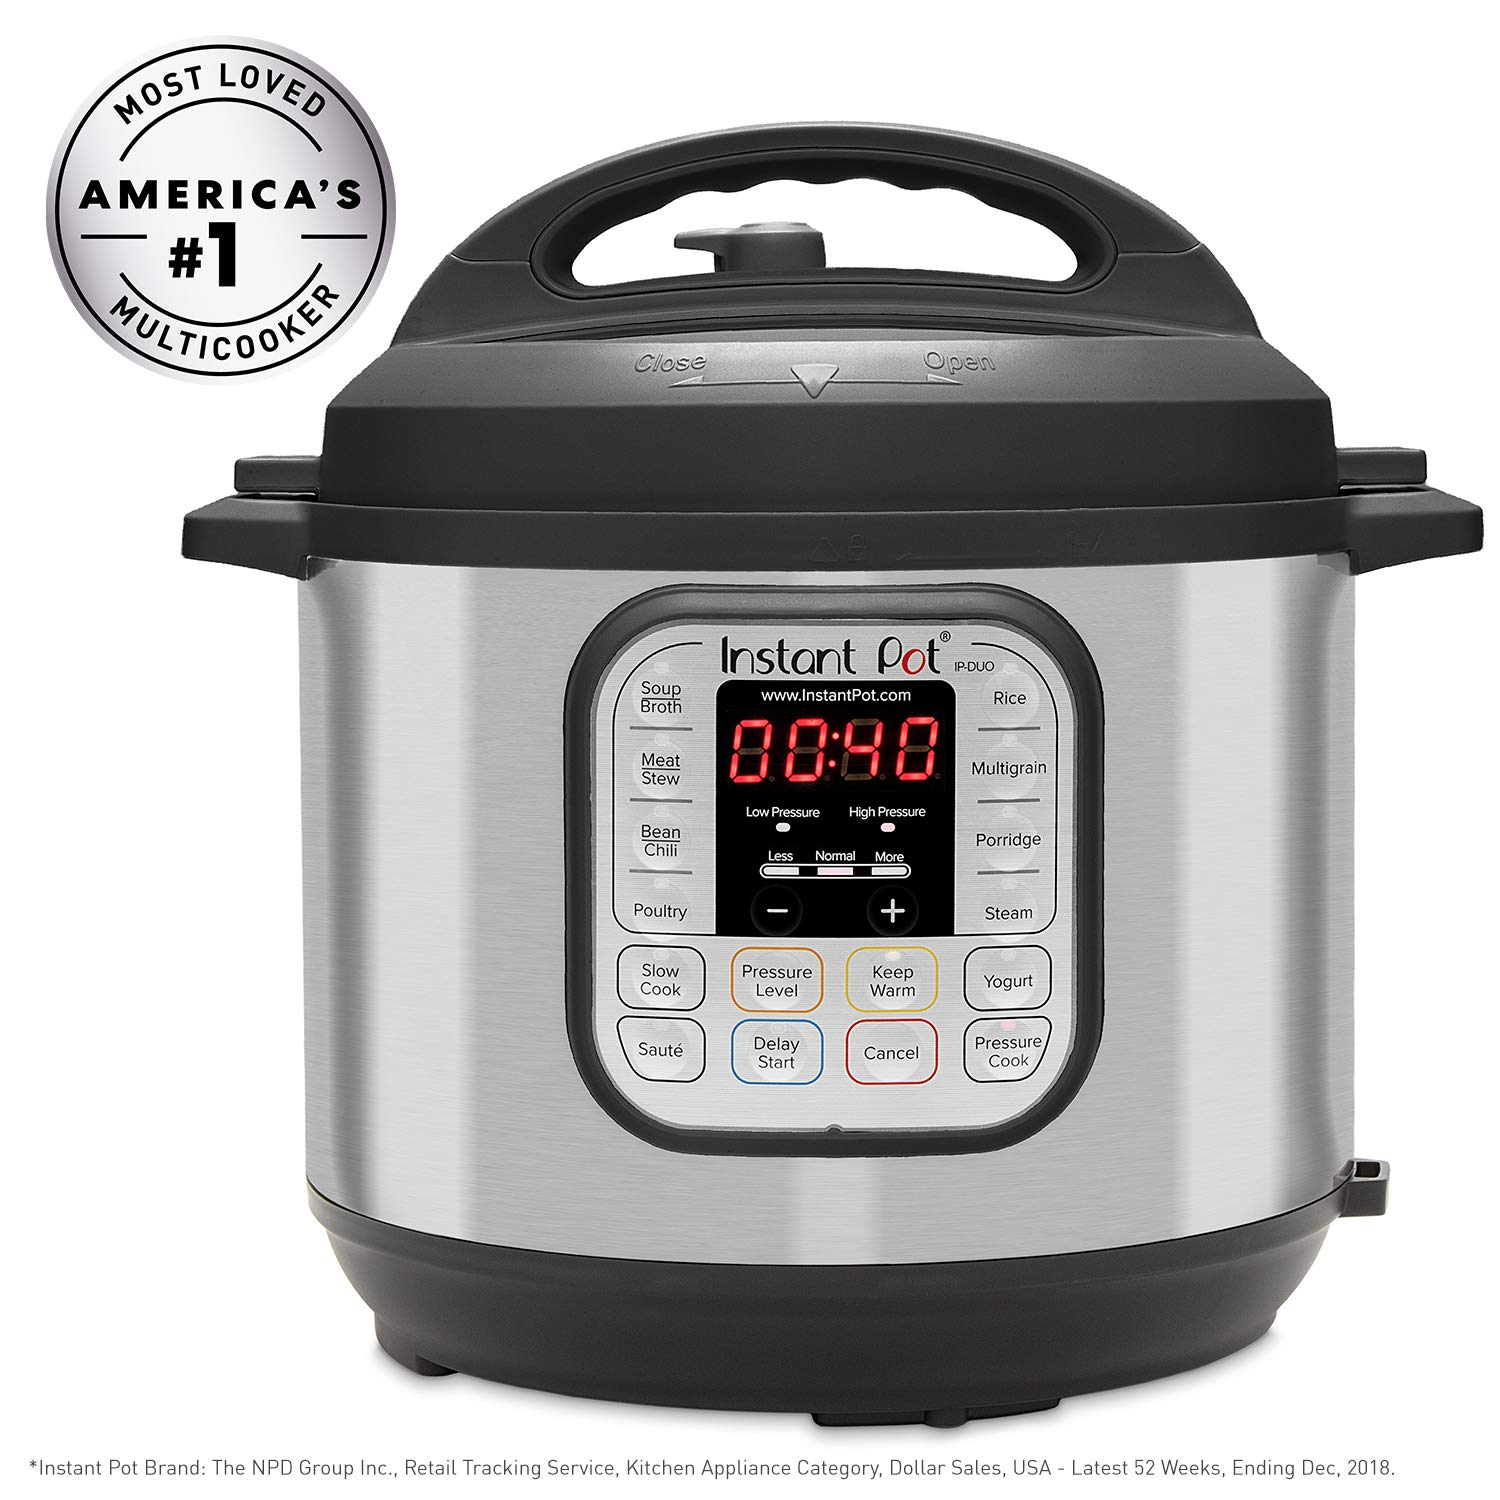 Instant Pot DUO80 8 Qt  7-in-1 Multi- Use Programmable Pressure Cooker, Slow Cooker, Rice Cooker, Steamer, Sauté, Yogurt Maker and Warmer by Instant Pot